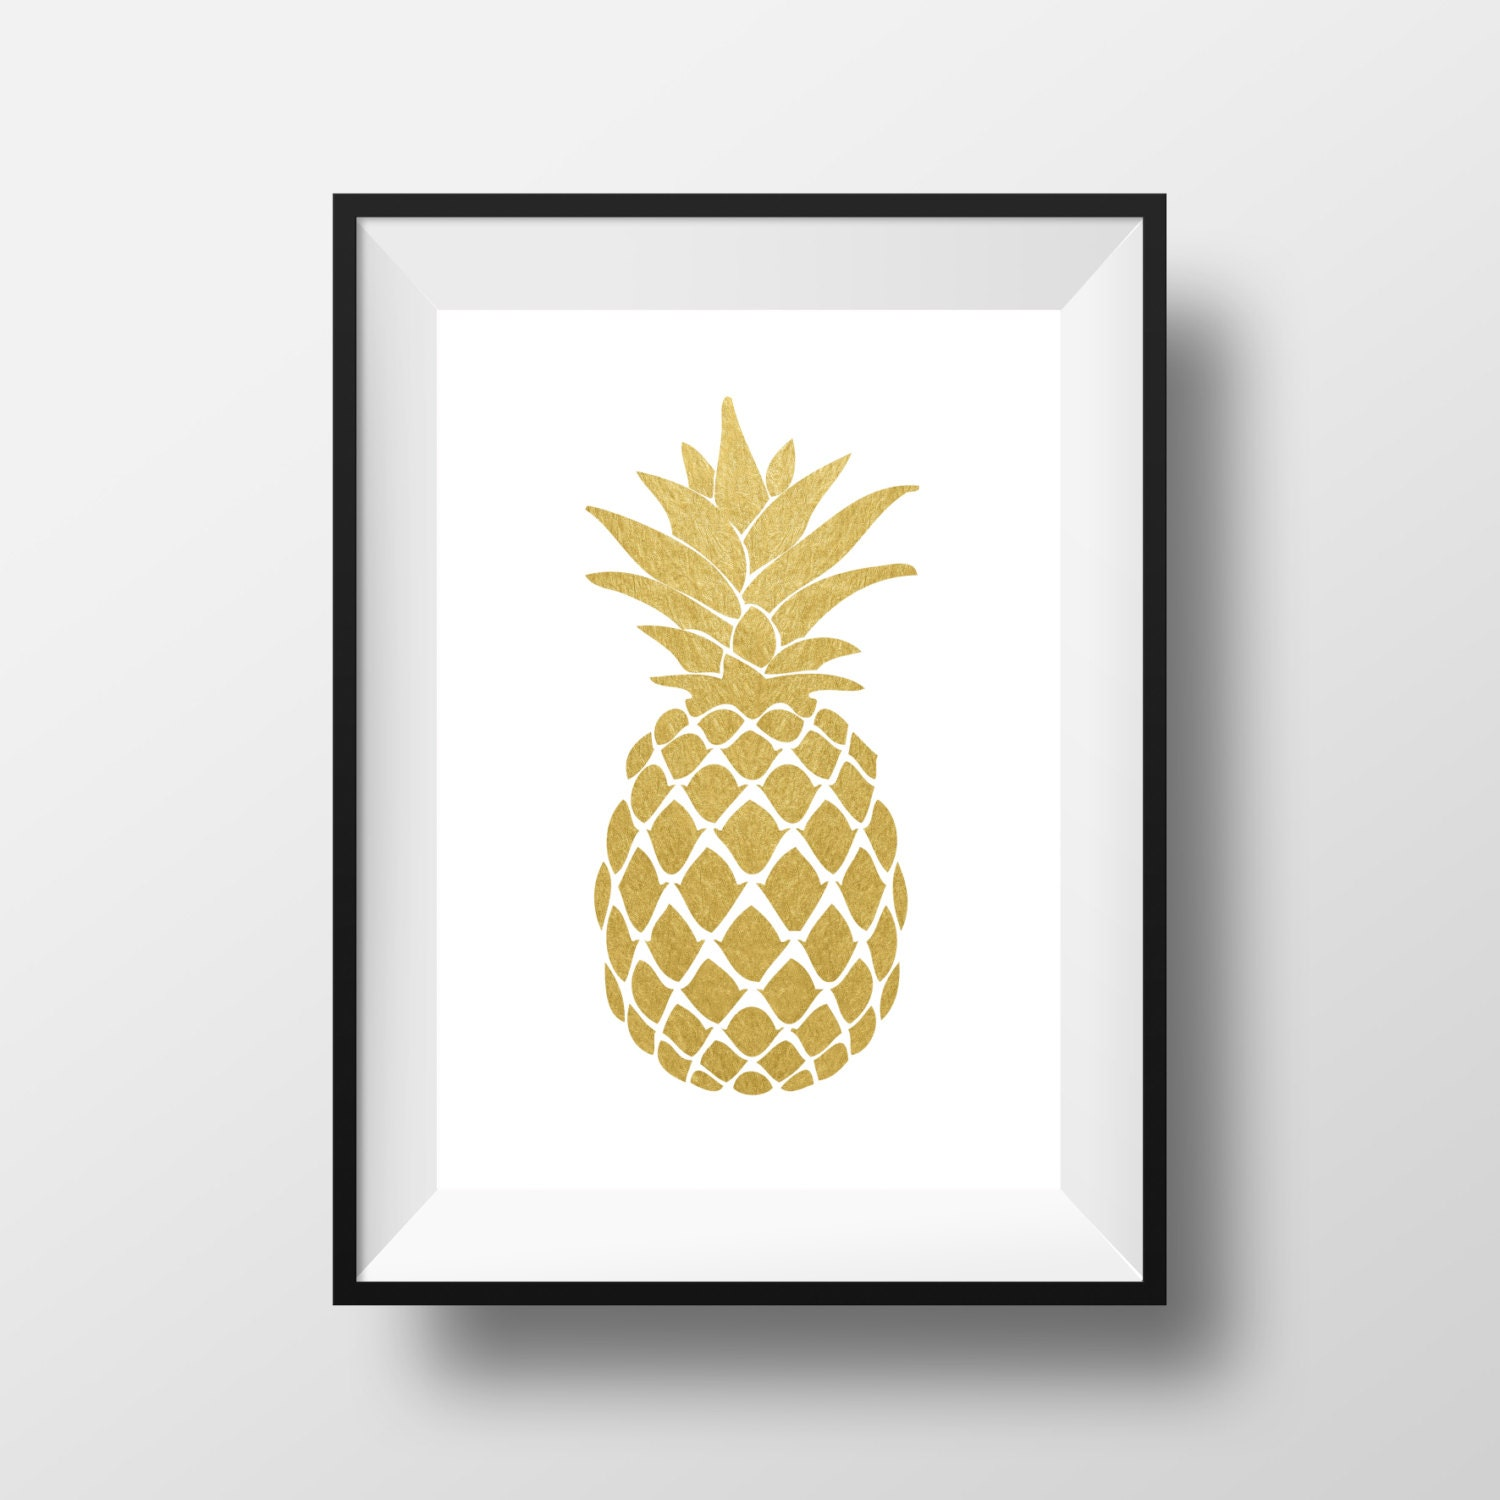 Wall Art Decor Gold : Pineapple wall art gold print